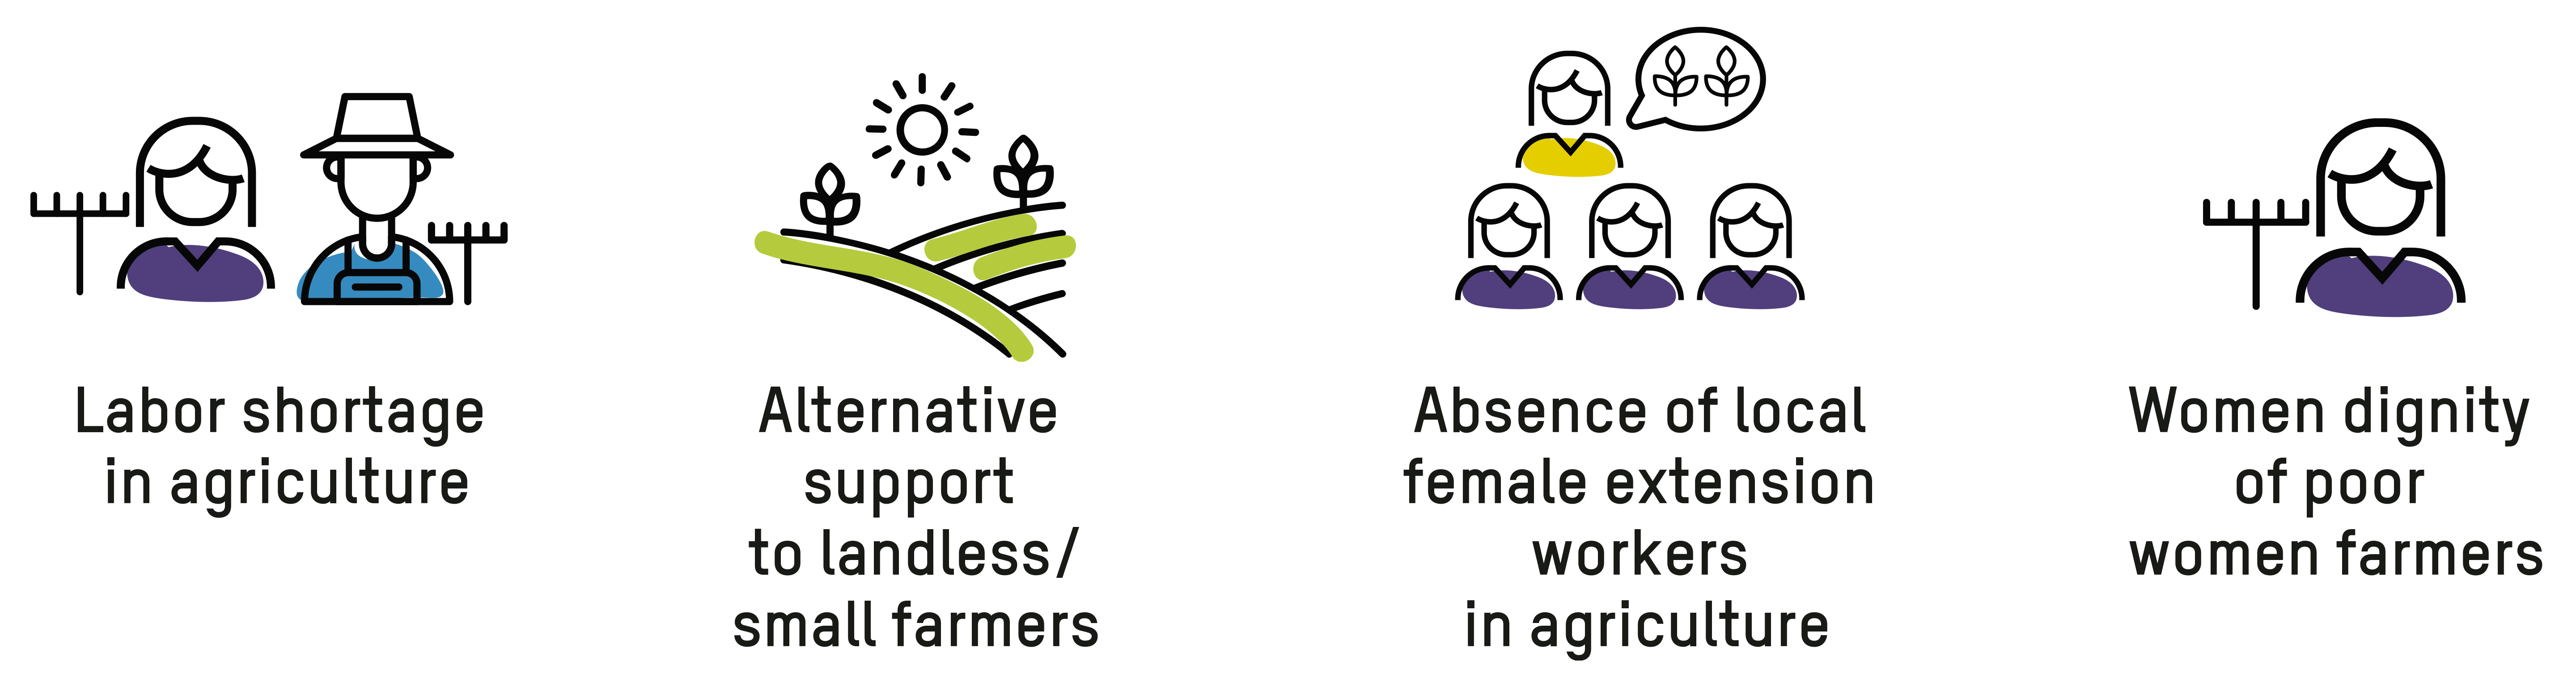 Women-Led Agriculture Service Team